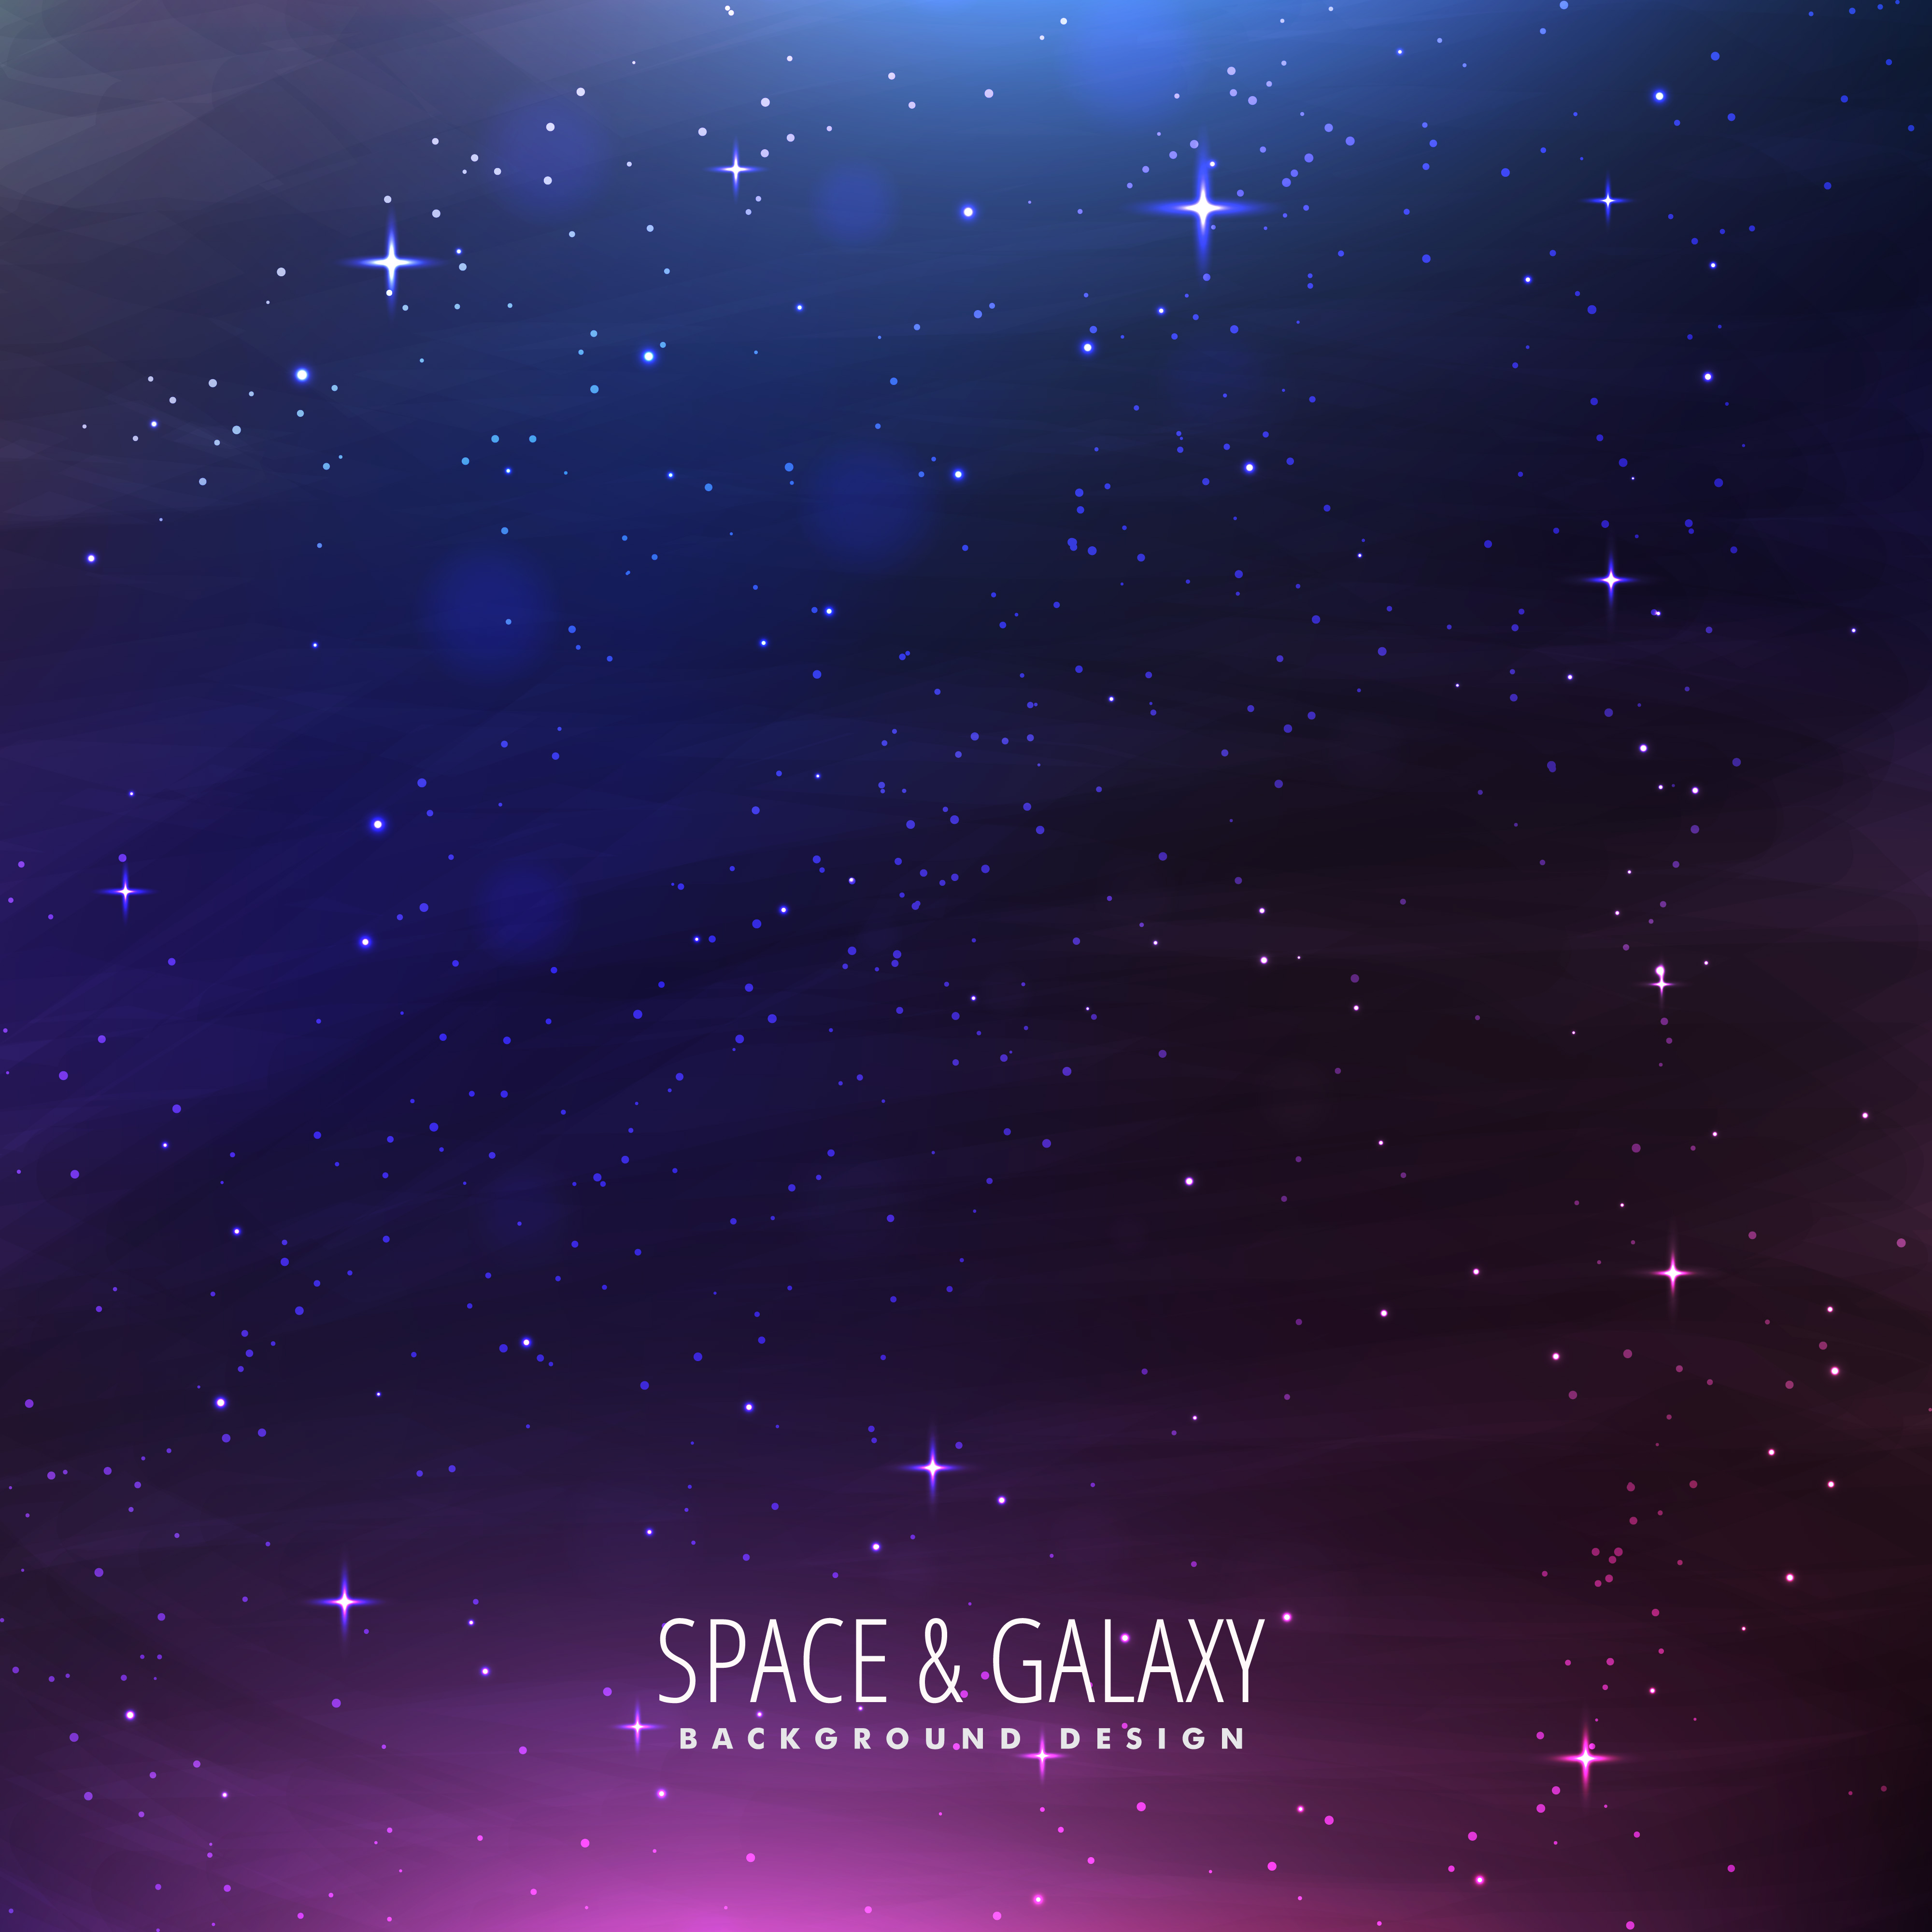 space galaxy background - Download Free Vector Art, Stock ...